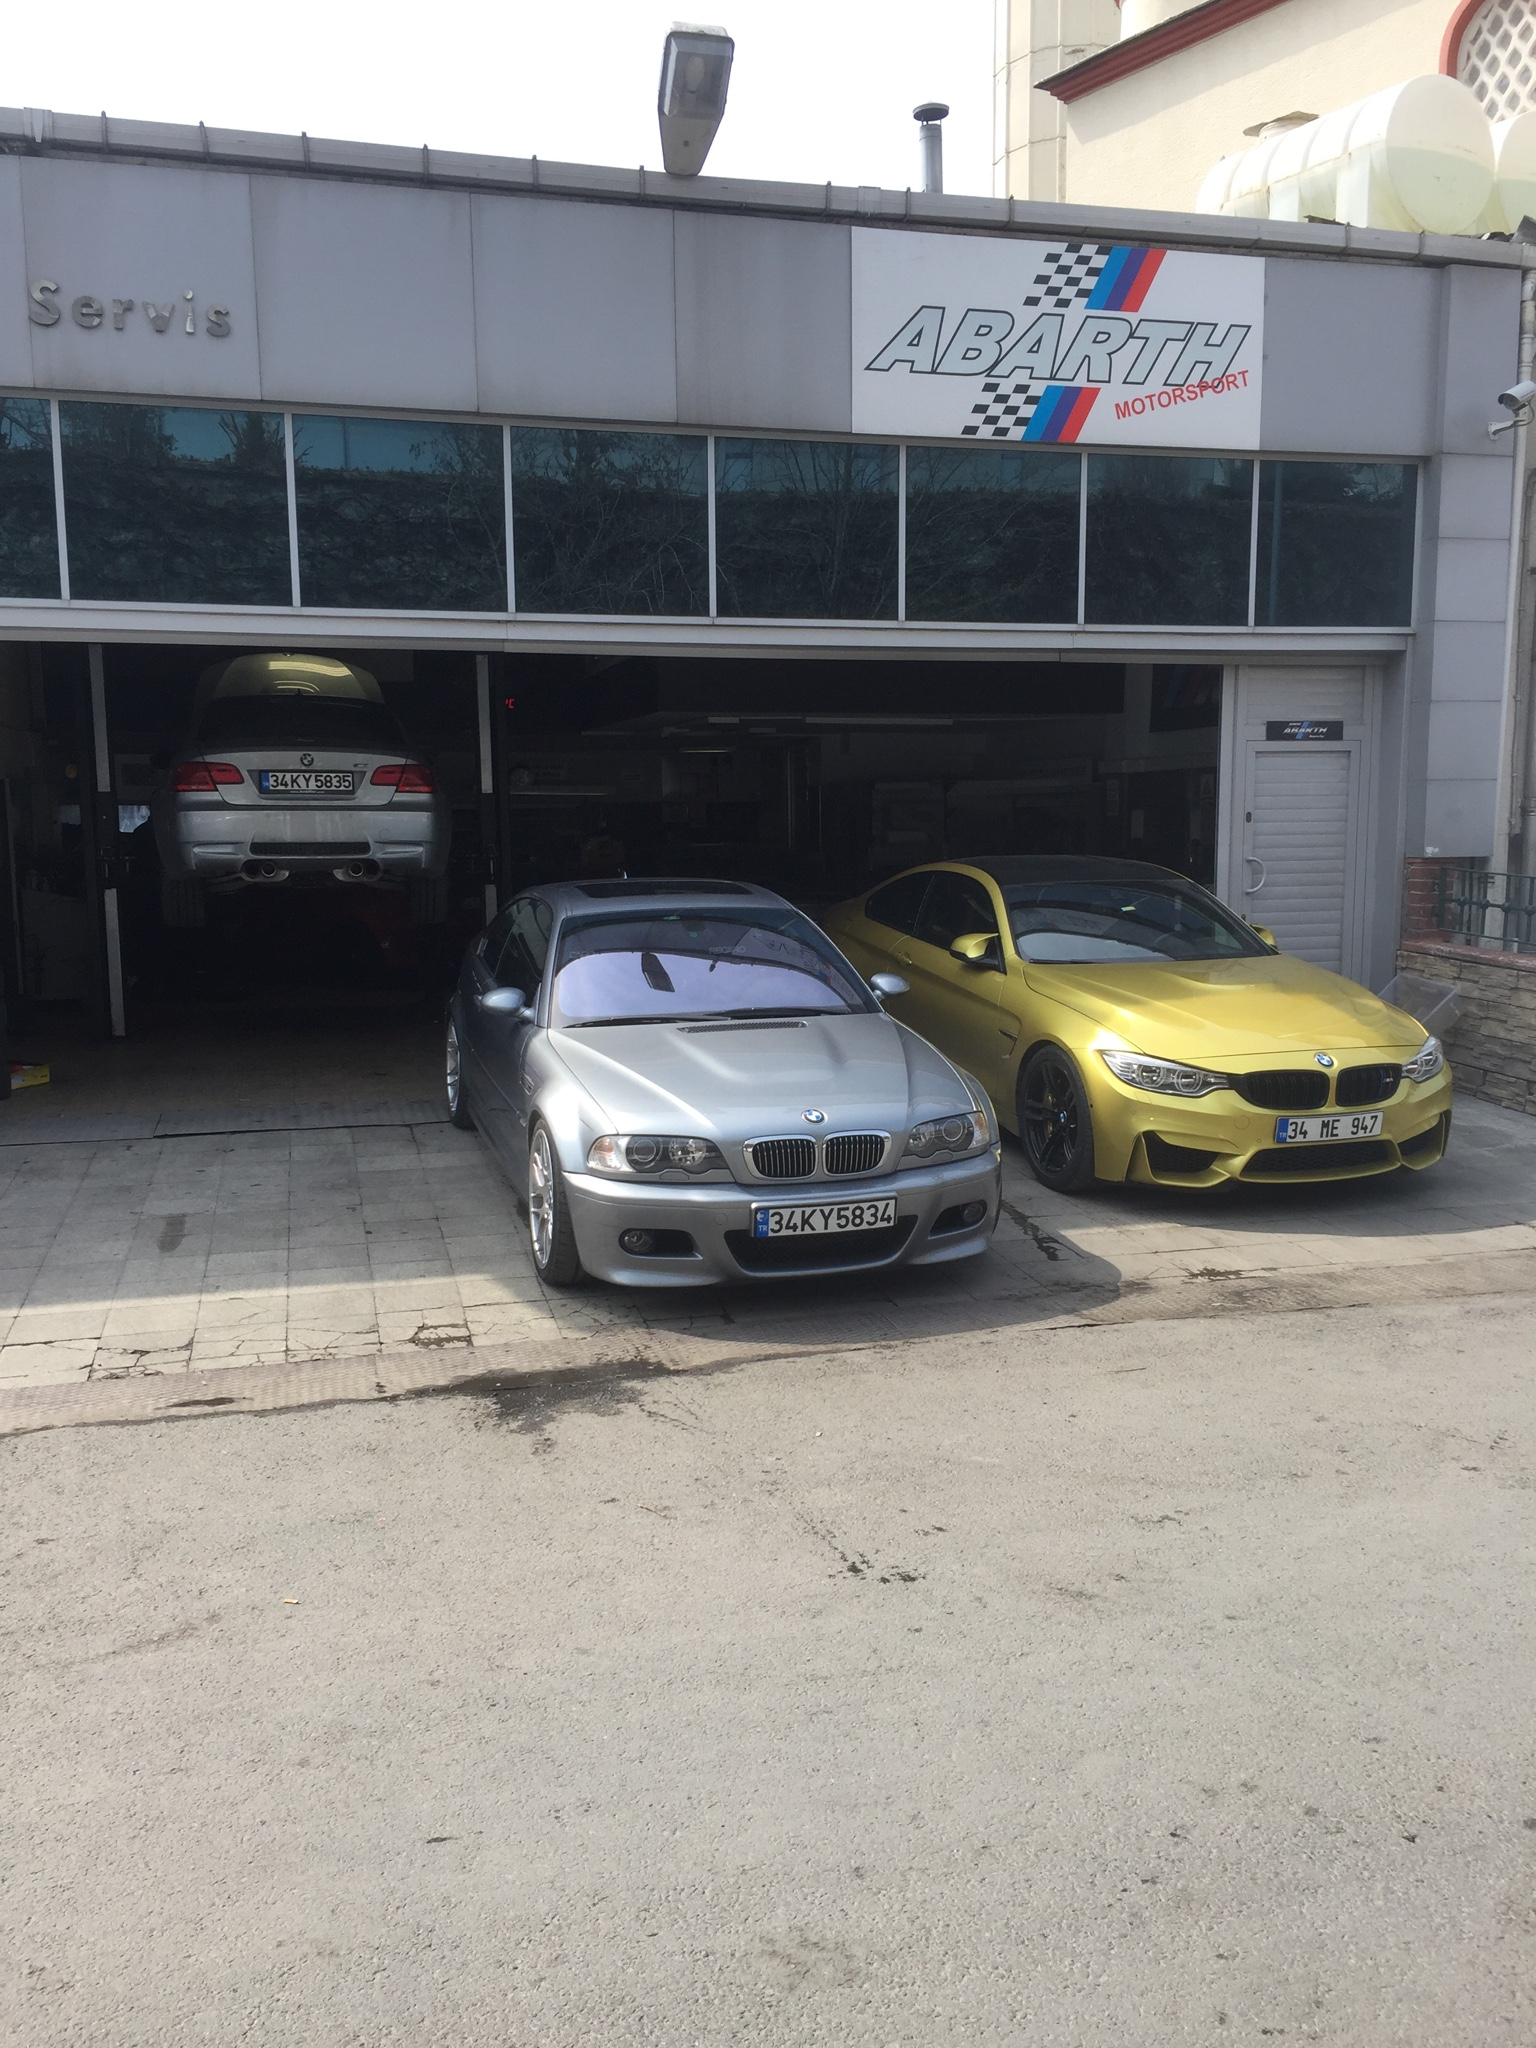 Bmw Abarth Servis De Bugün Basligi Bmw Car Club Turkey